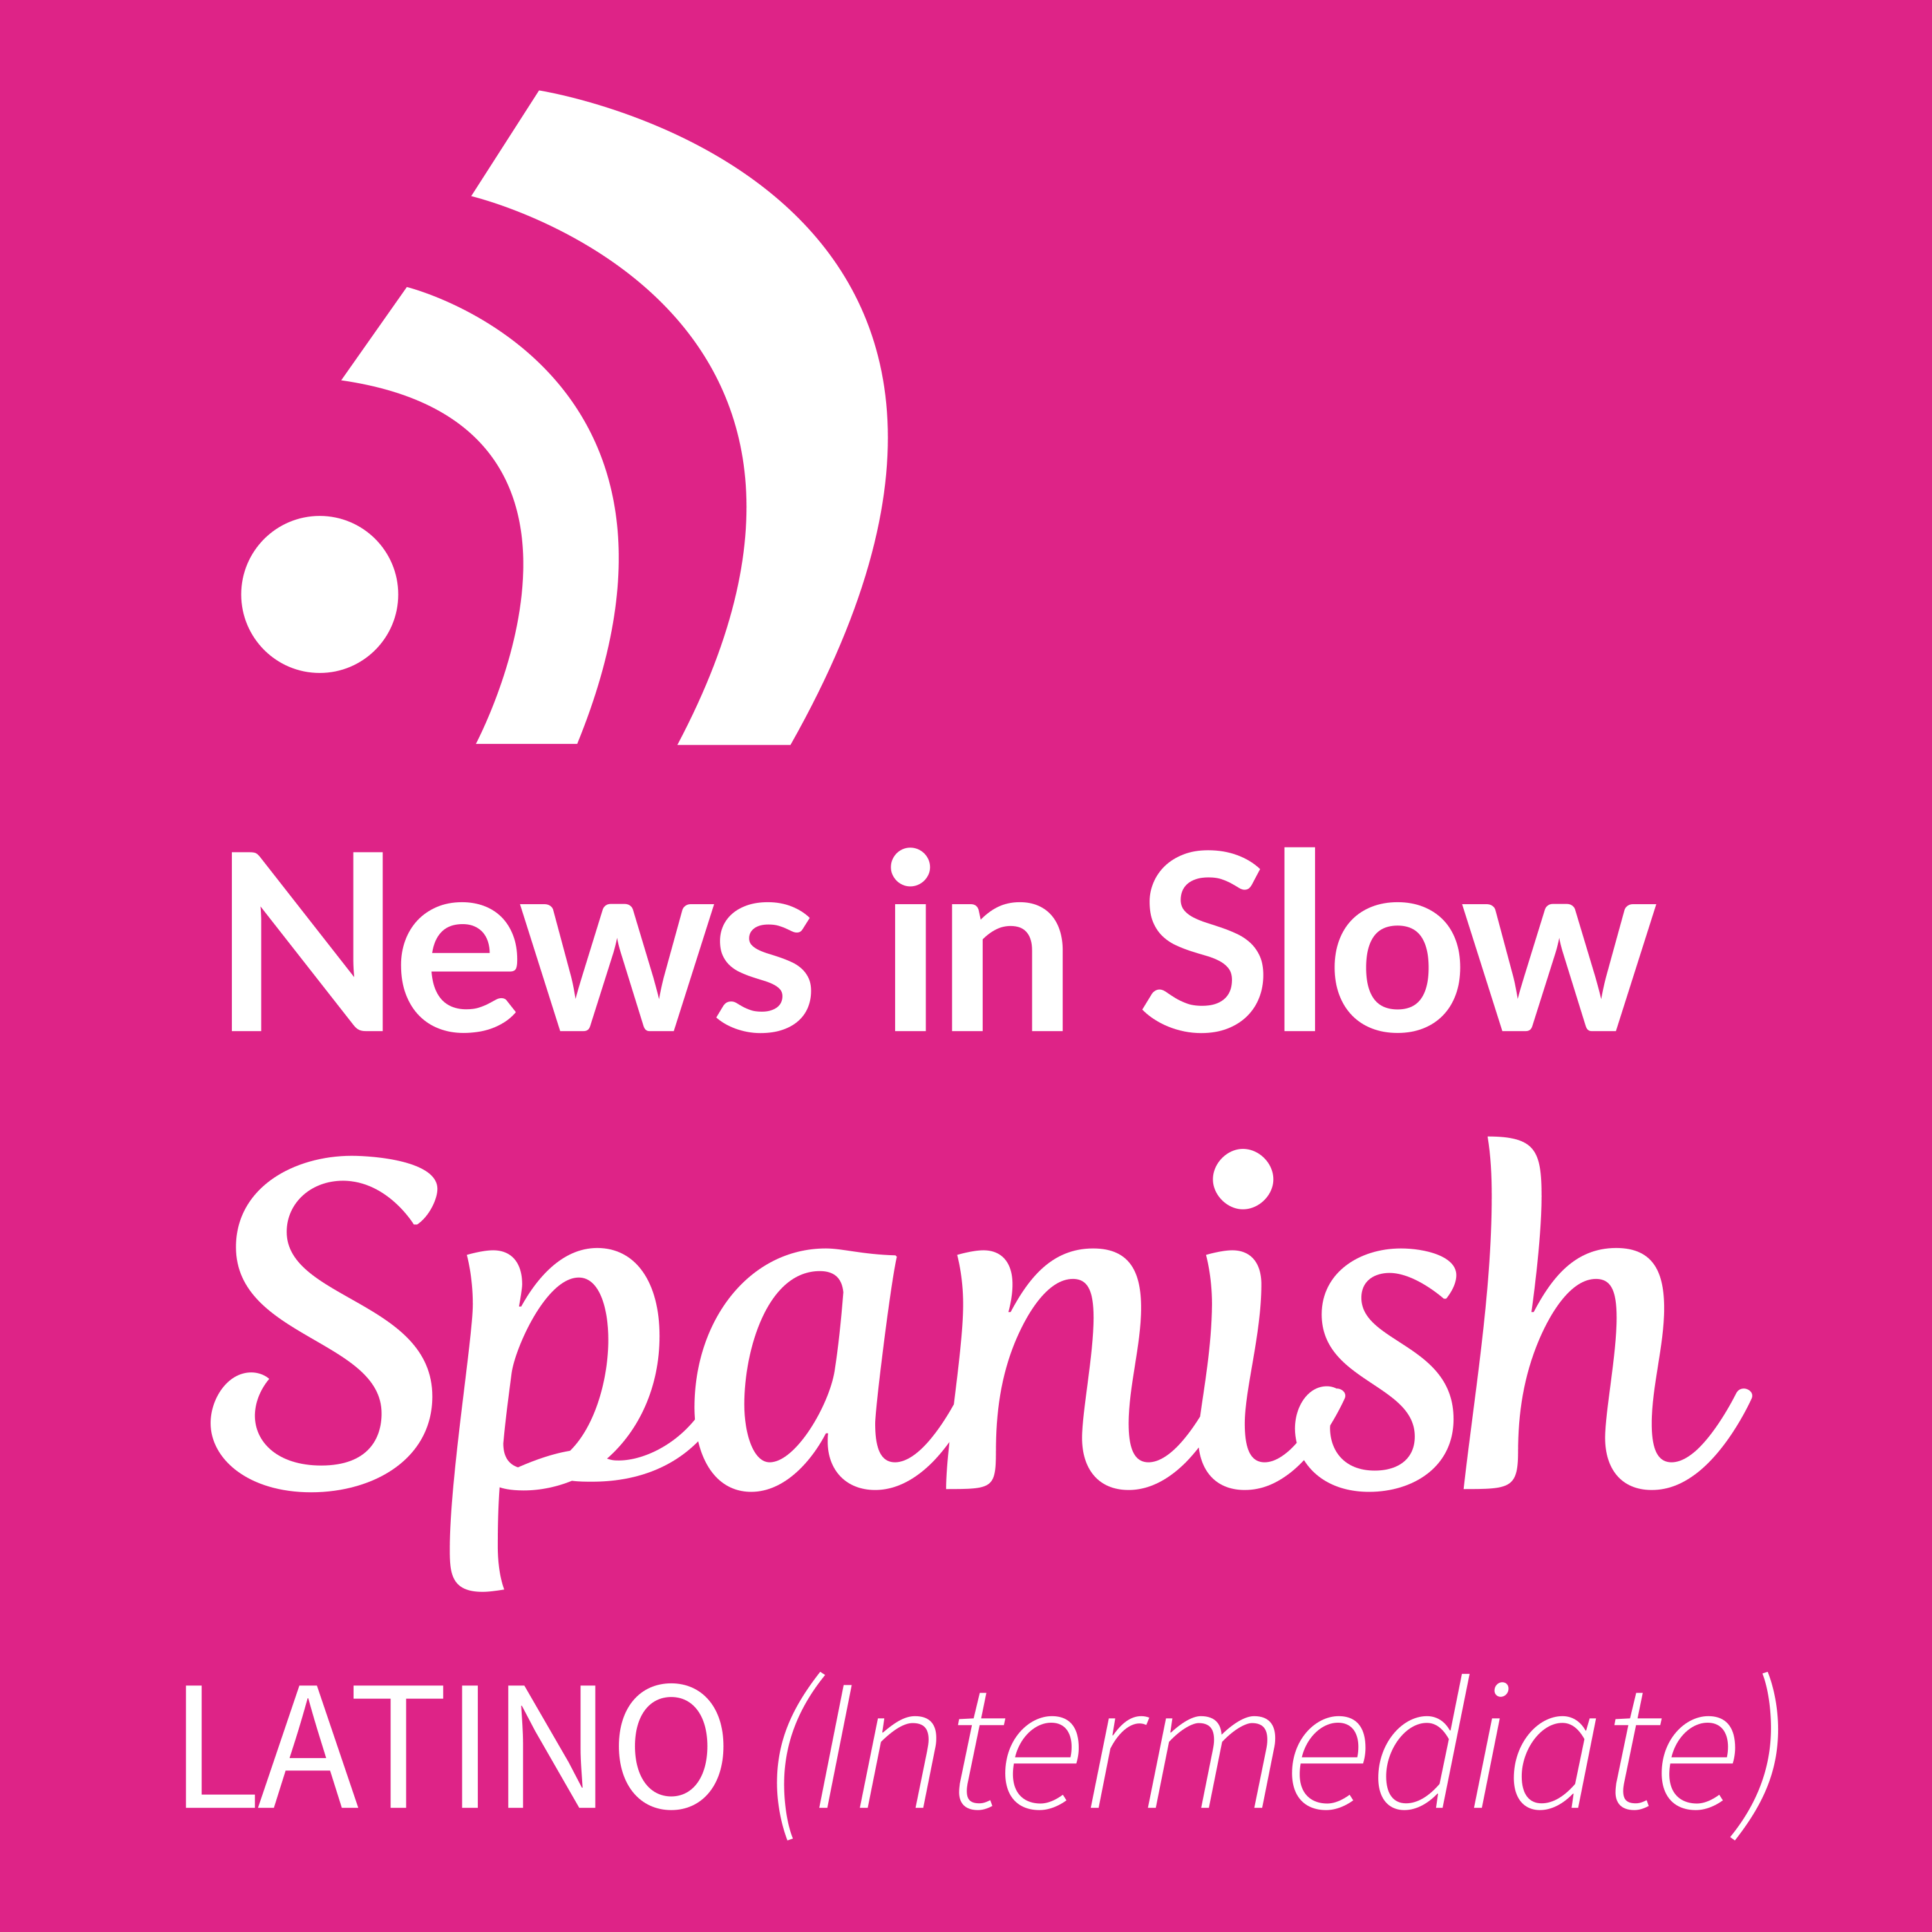 News in Slow Spanish Latino - # 157 - Language learning in the context of current events